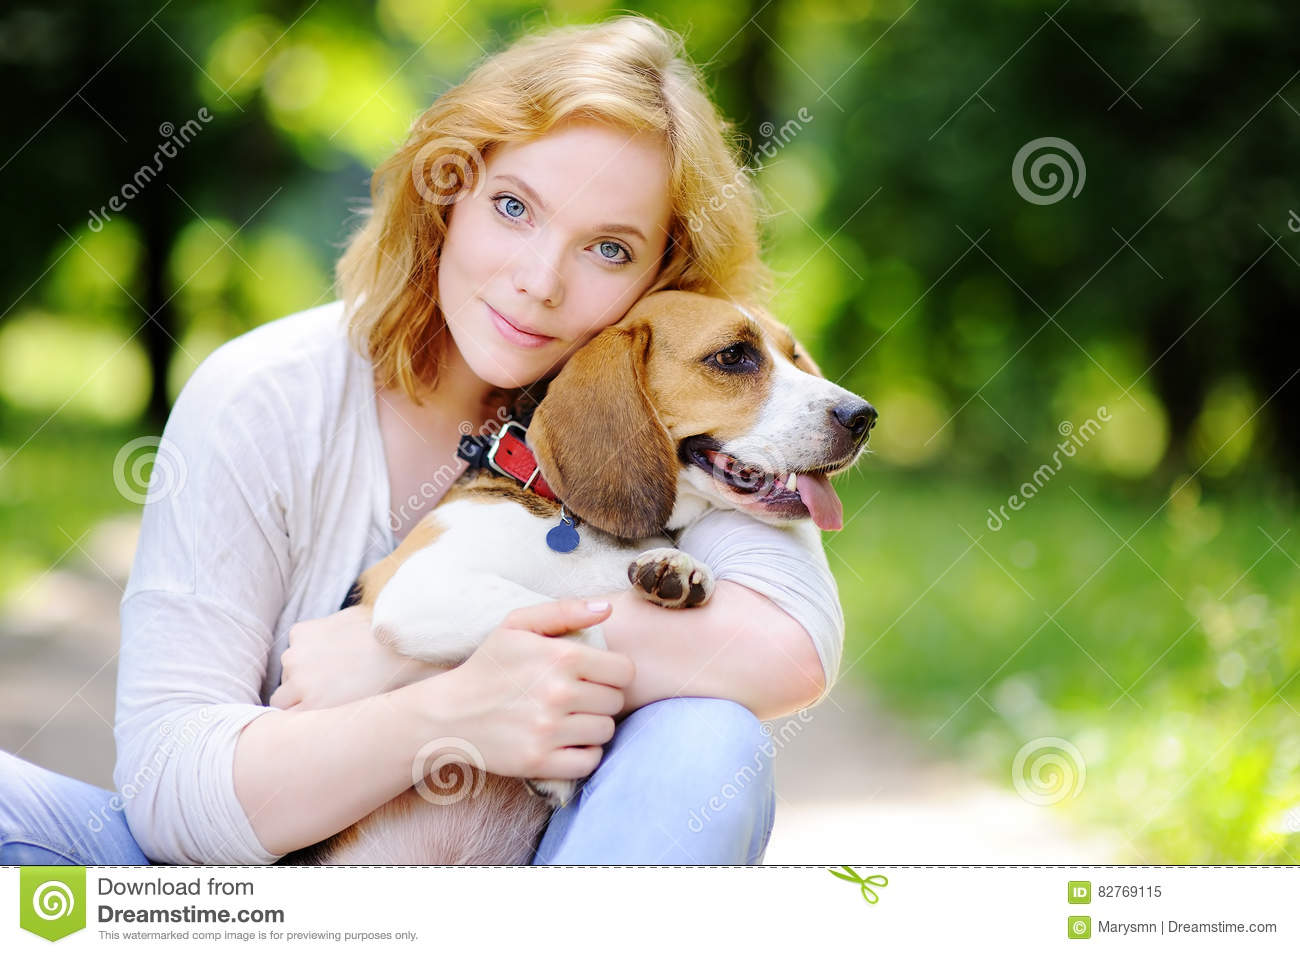 Young woman with Beagle dog in the park